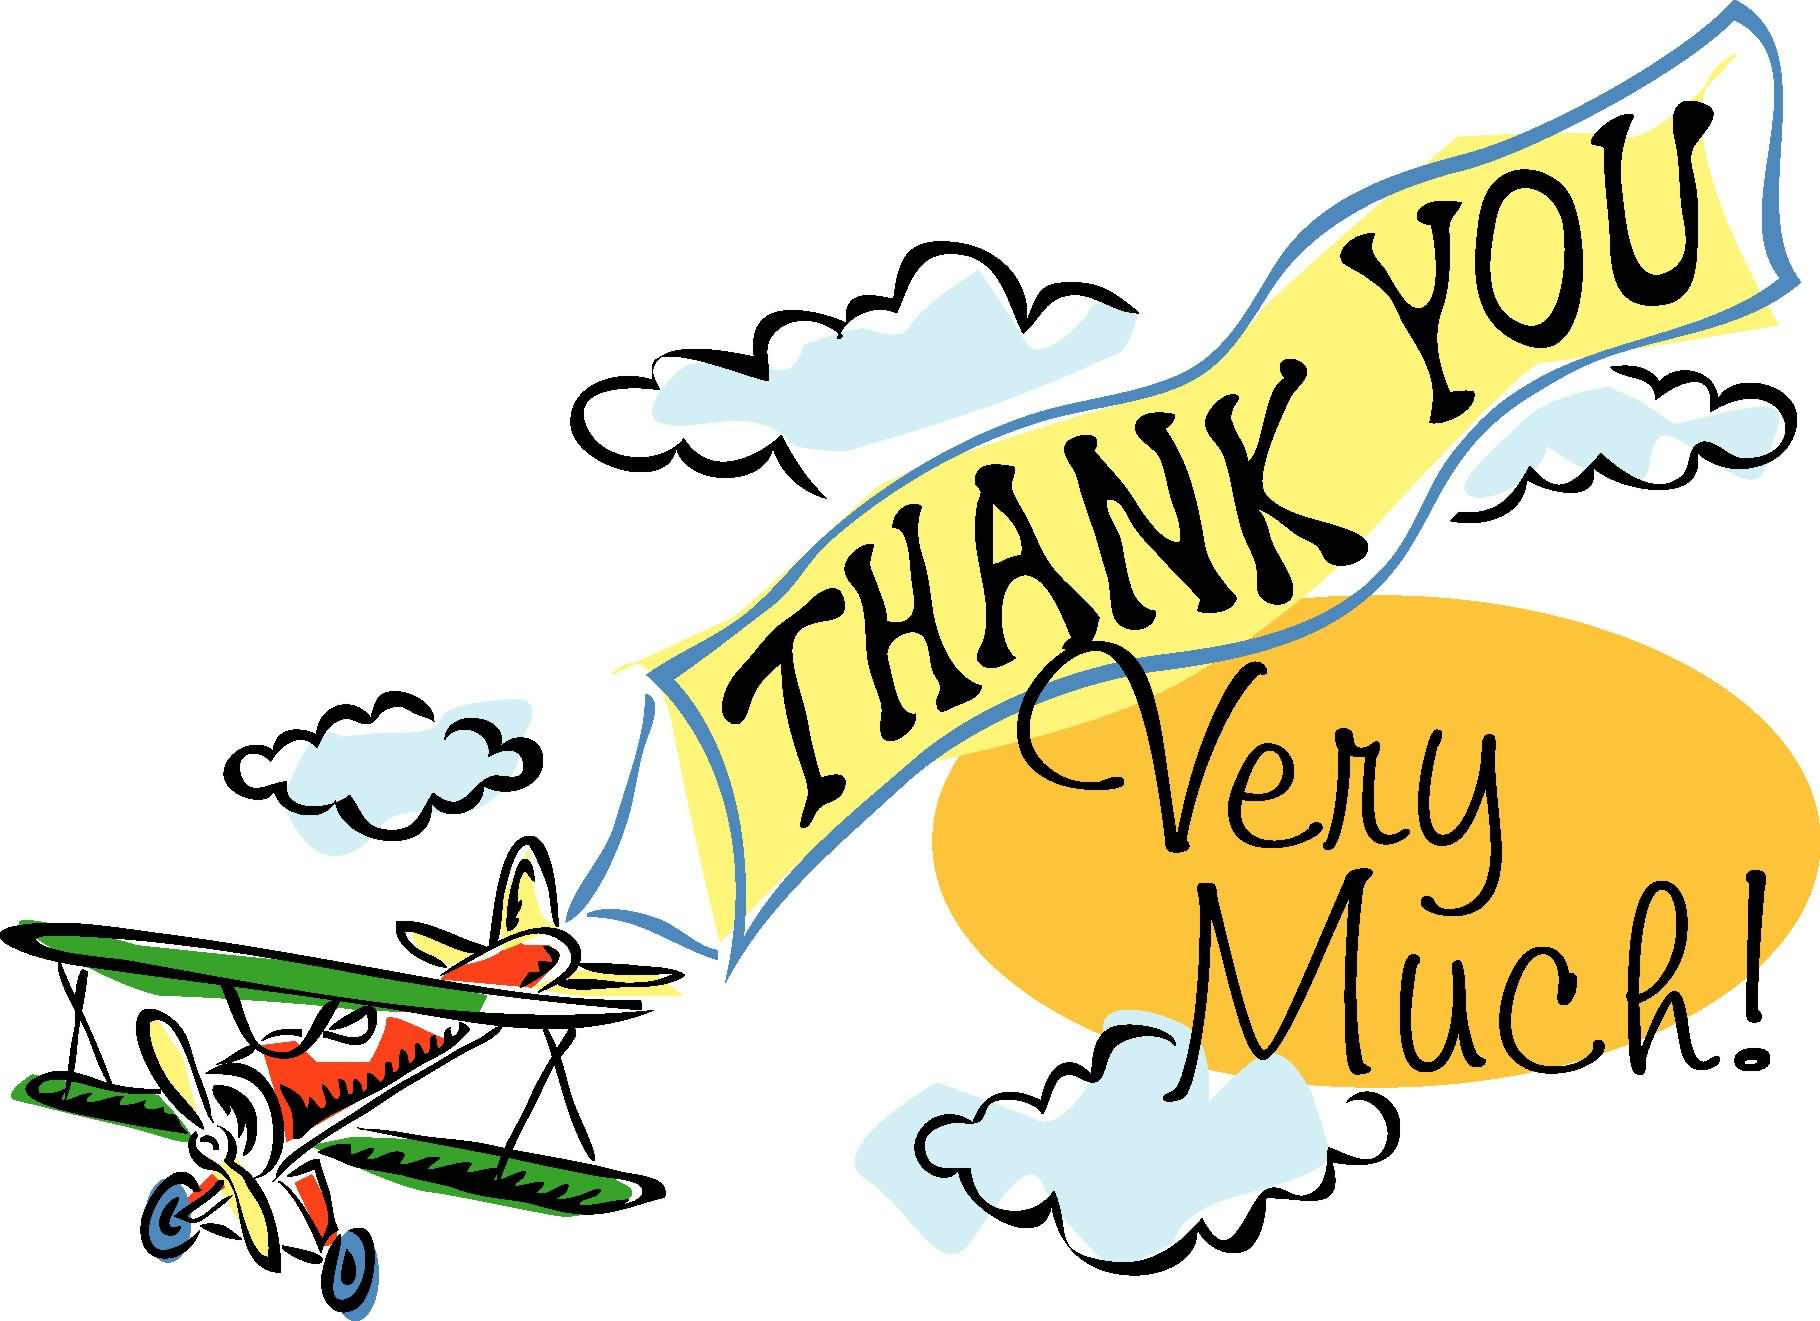 Thank You Very Much Clip Art free image.